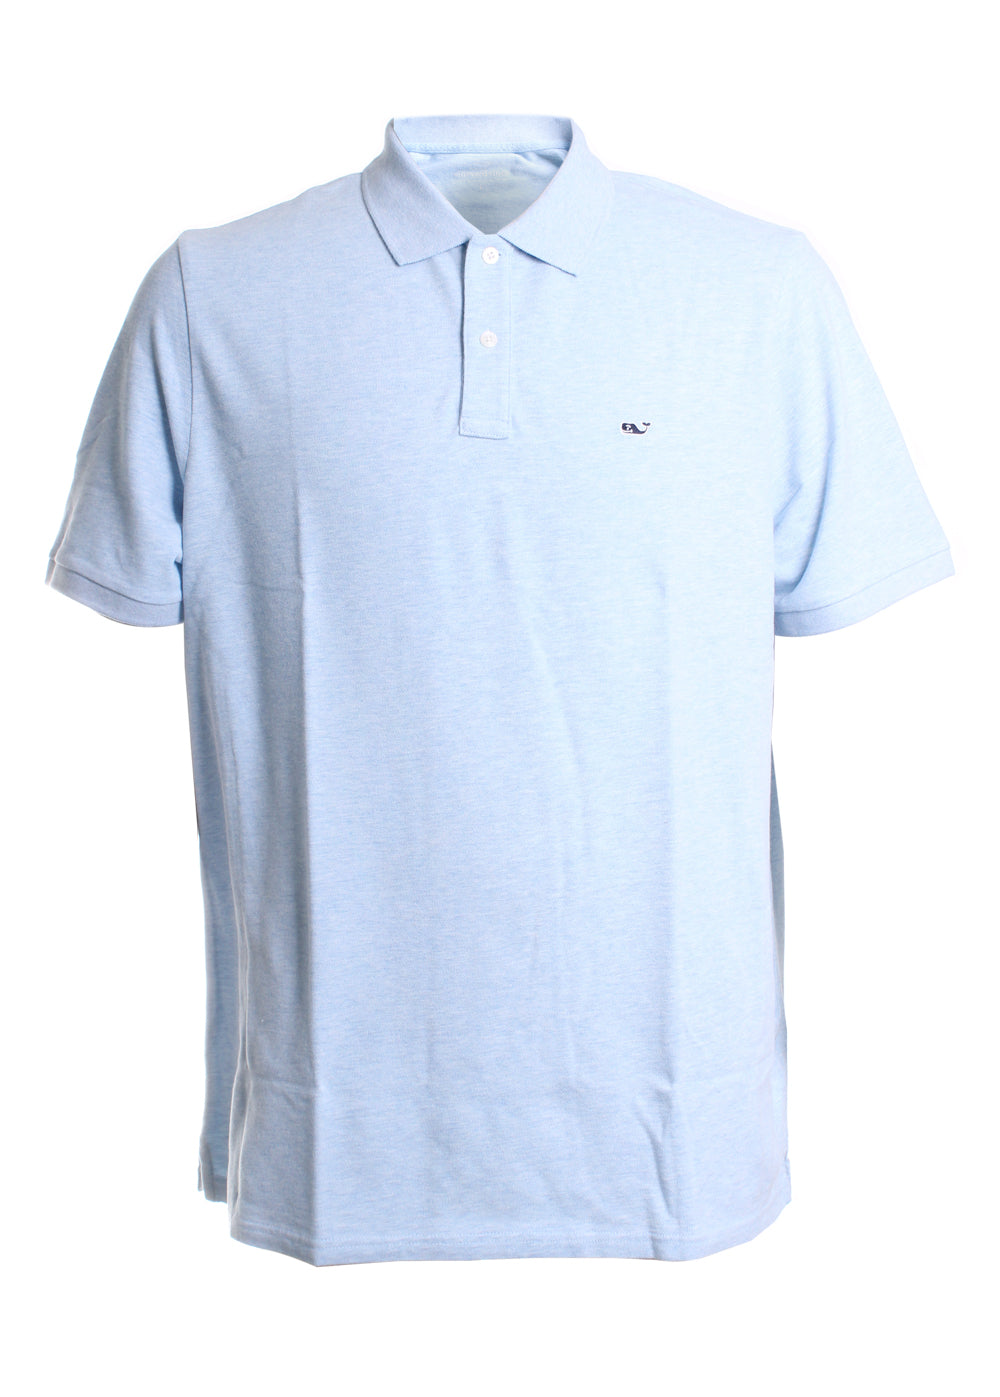 Vineyard Vines Stretch Pique Polo in Jake Blue